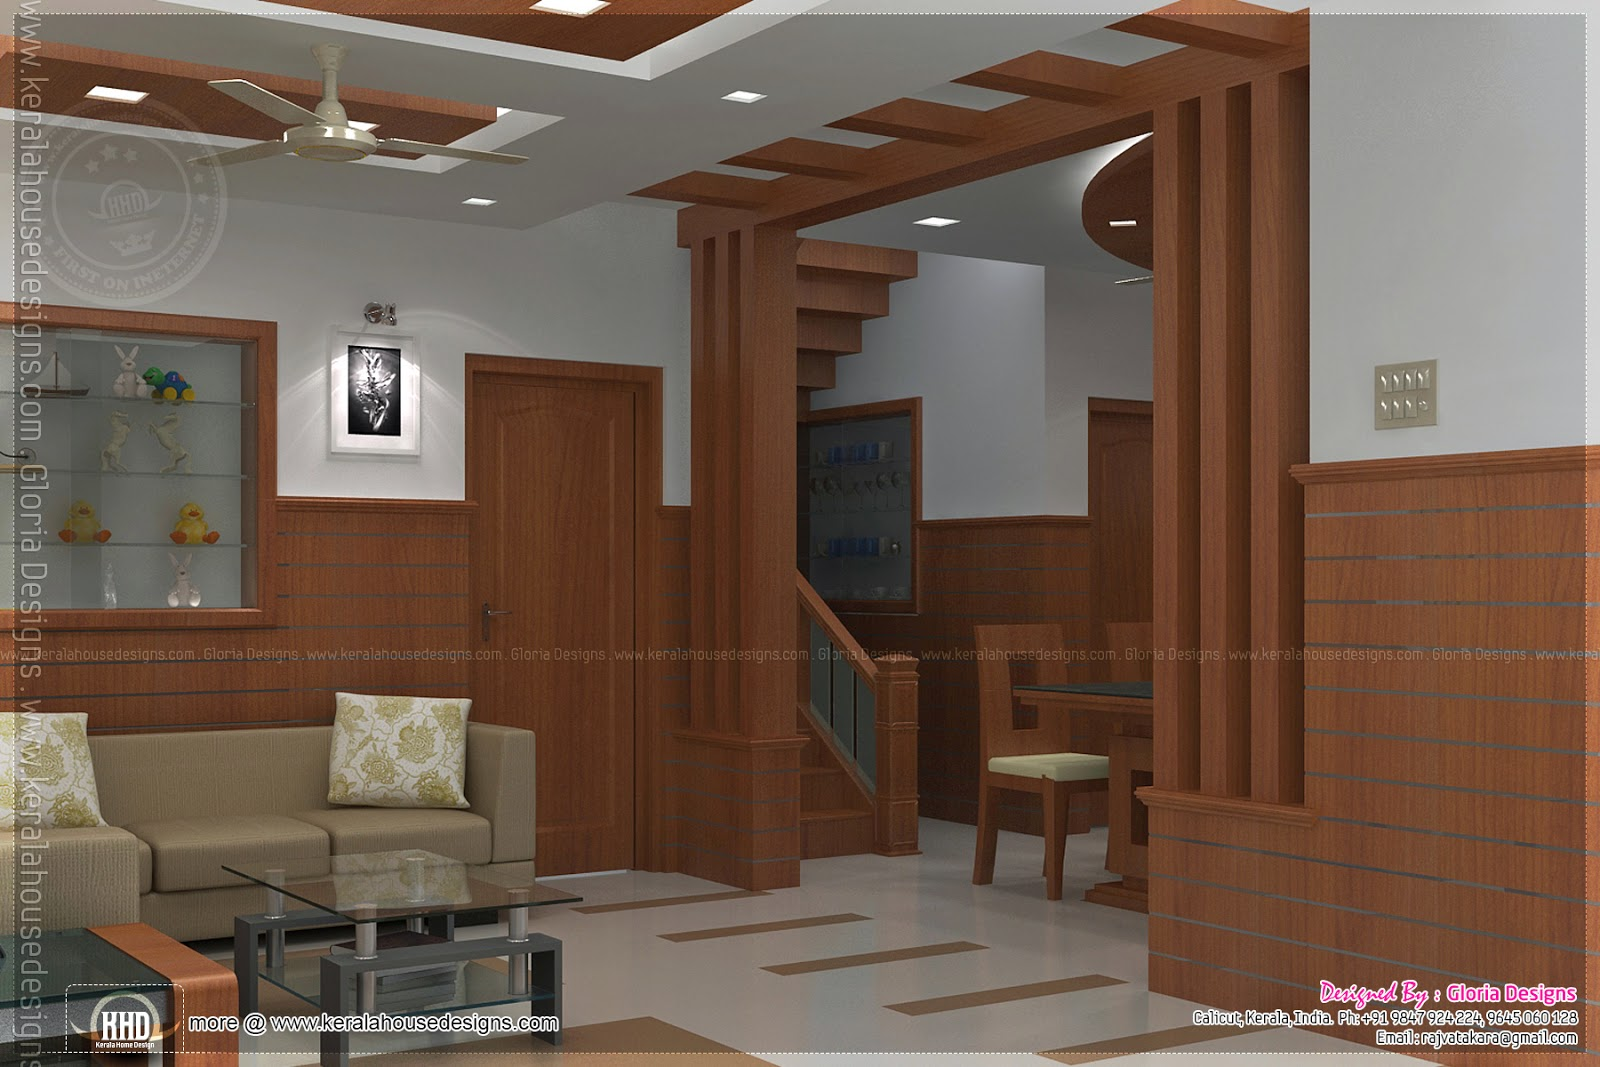 Low Cost Kerala Style Living Room Interior Designs Home Design Ideas